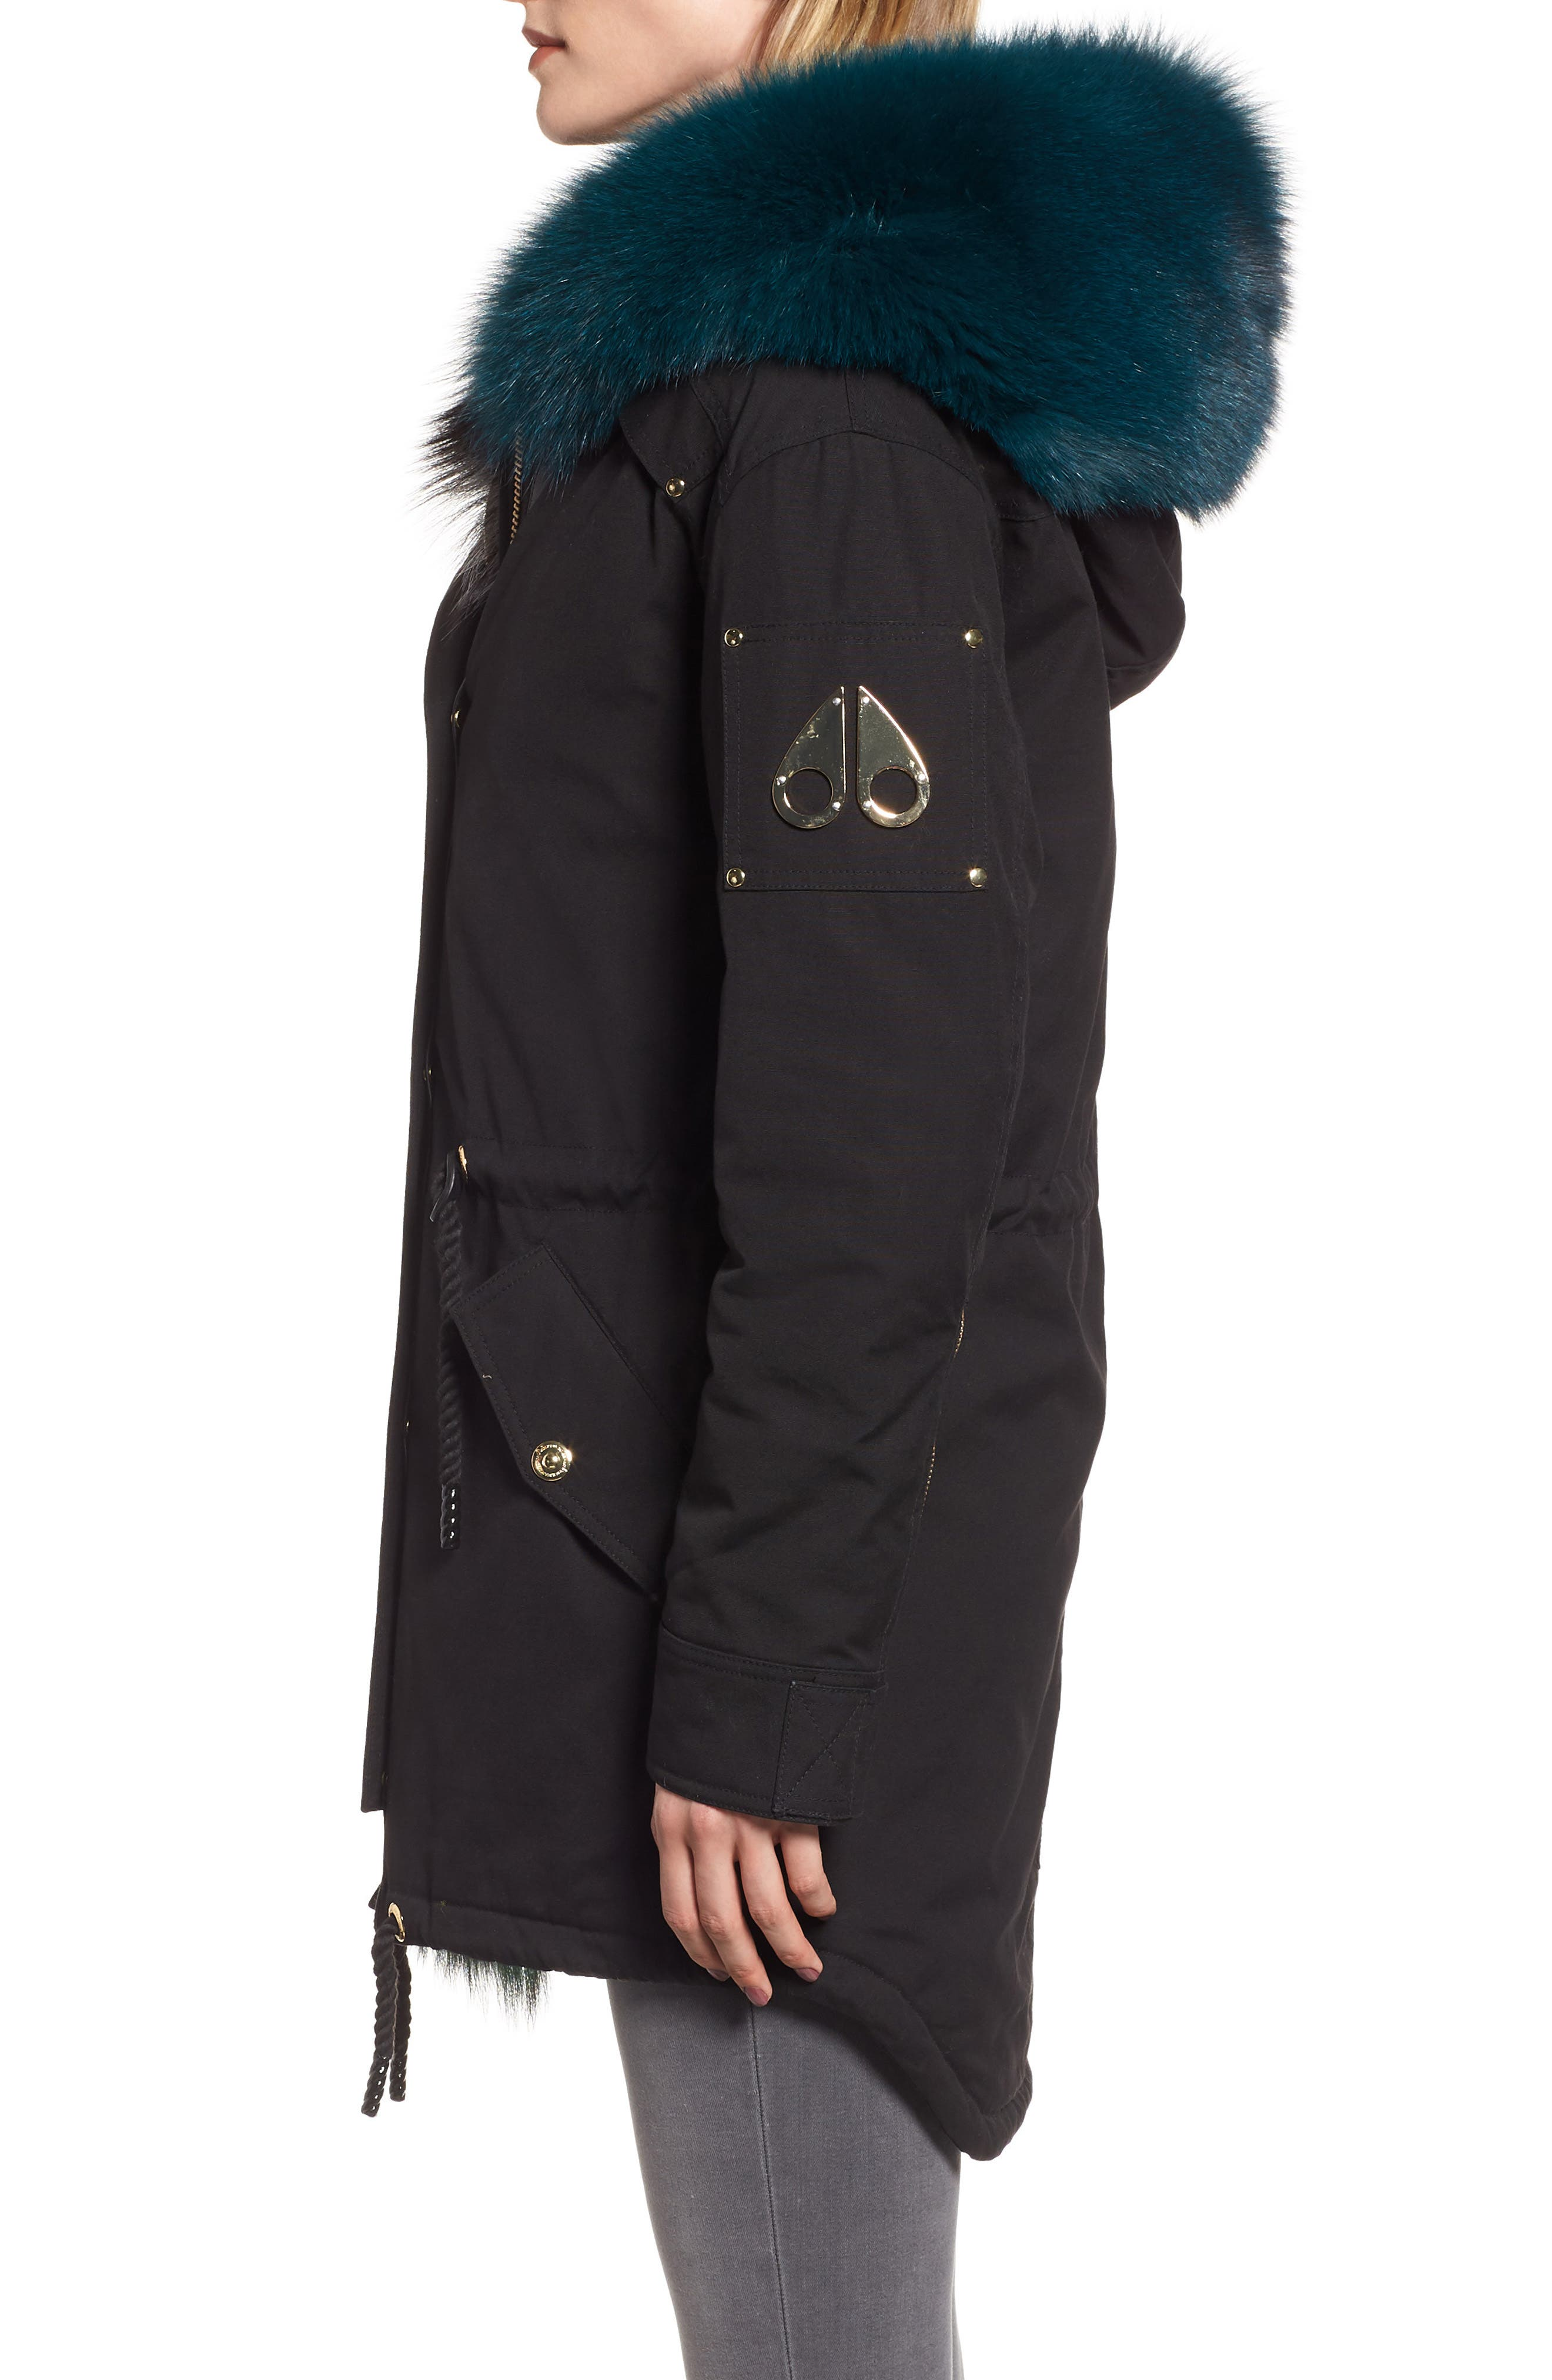 Foxy Stellar Parka with Genuine Rabbit Fur & Genuine Fox Fur,                             Alternate thumbnail 3, color,                             BLACK/ TEAL/ SKY BLUE/ GREEN